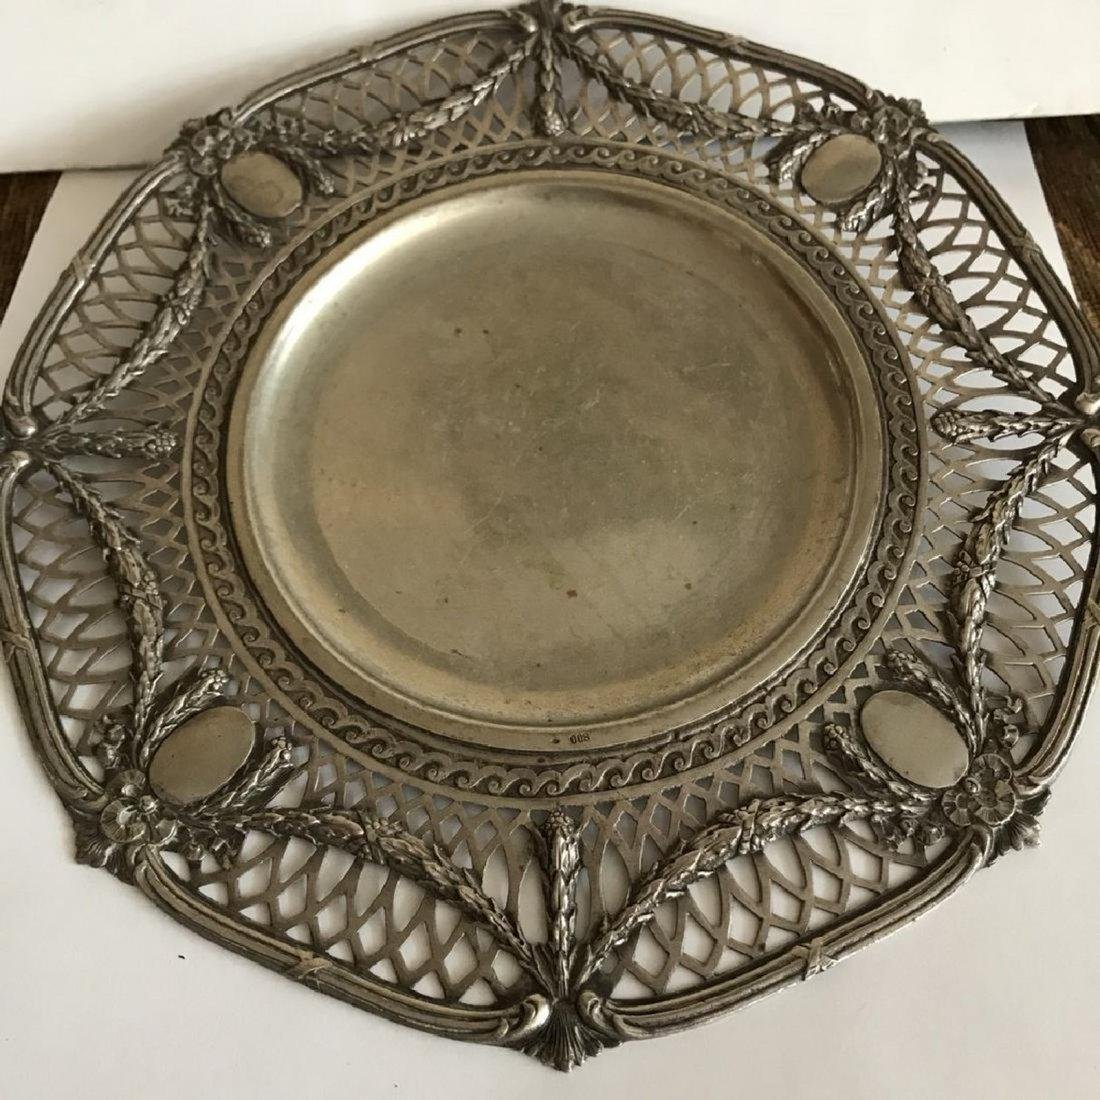 Antique silver 800 plate